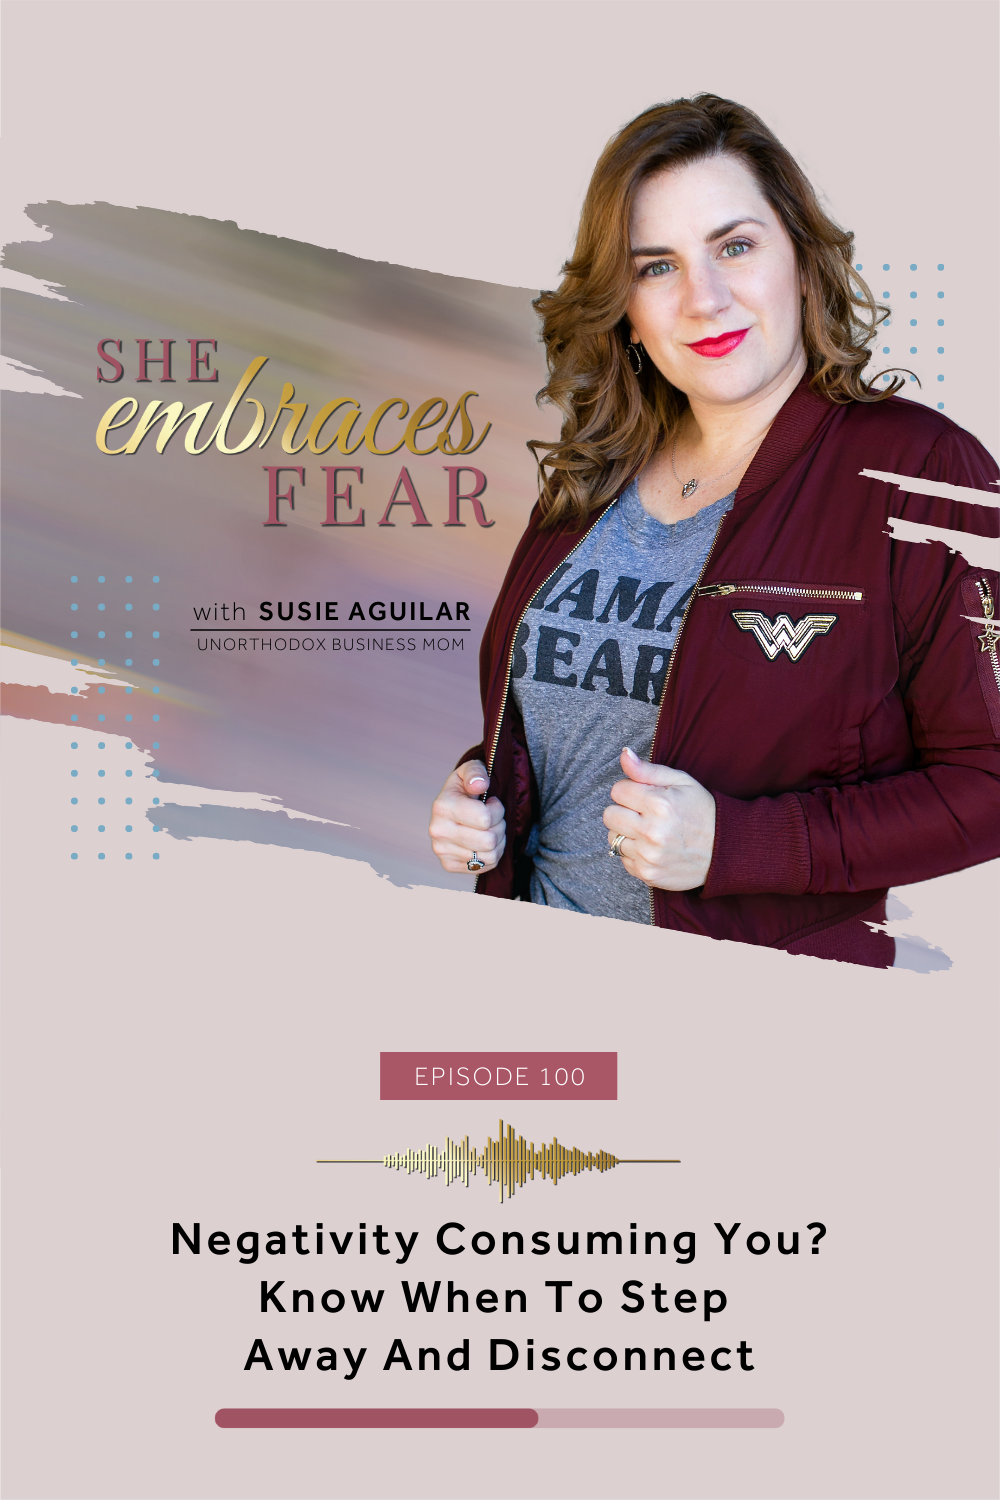 There are moments in which we need to realize we are doing ourselves a disservice and it's time to disconnect. I found myself consumed with negativity.